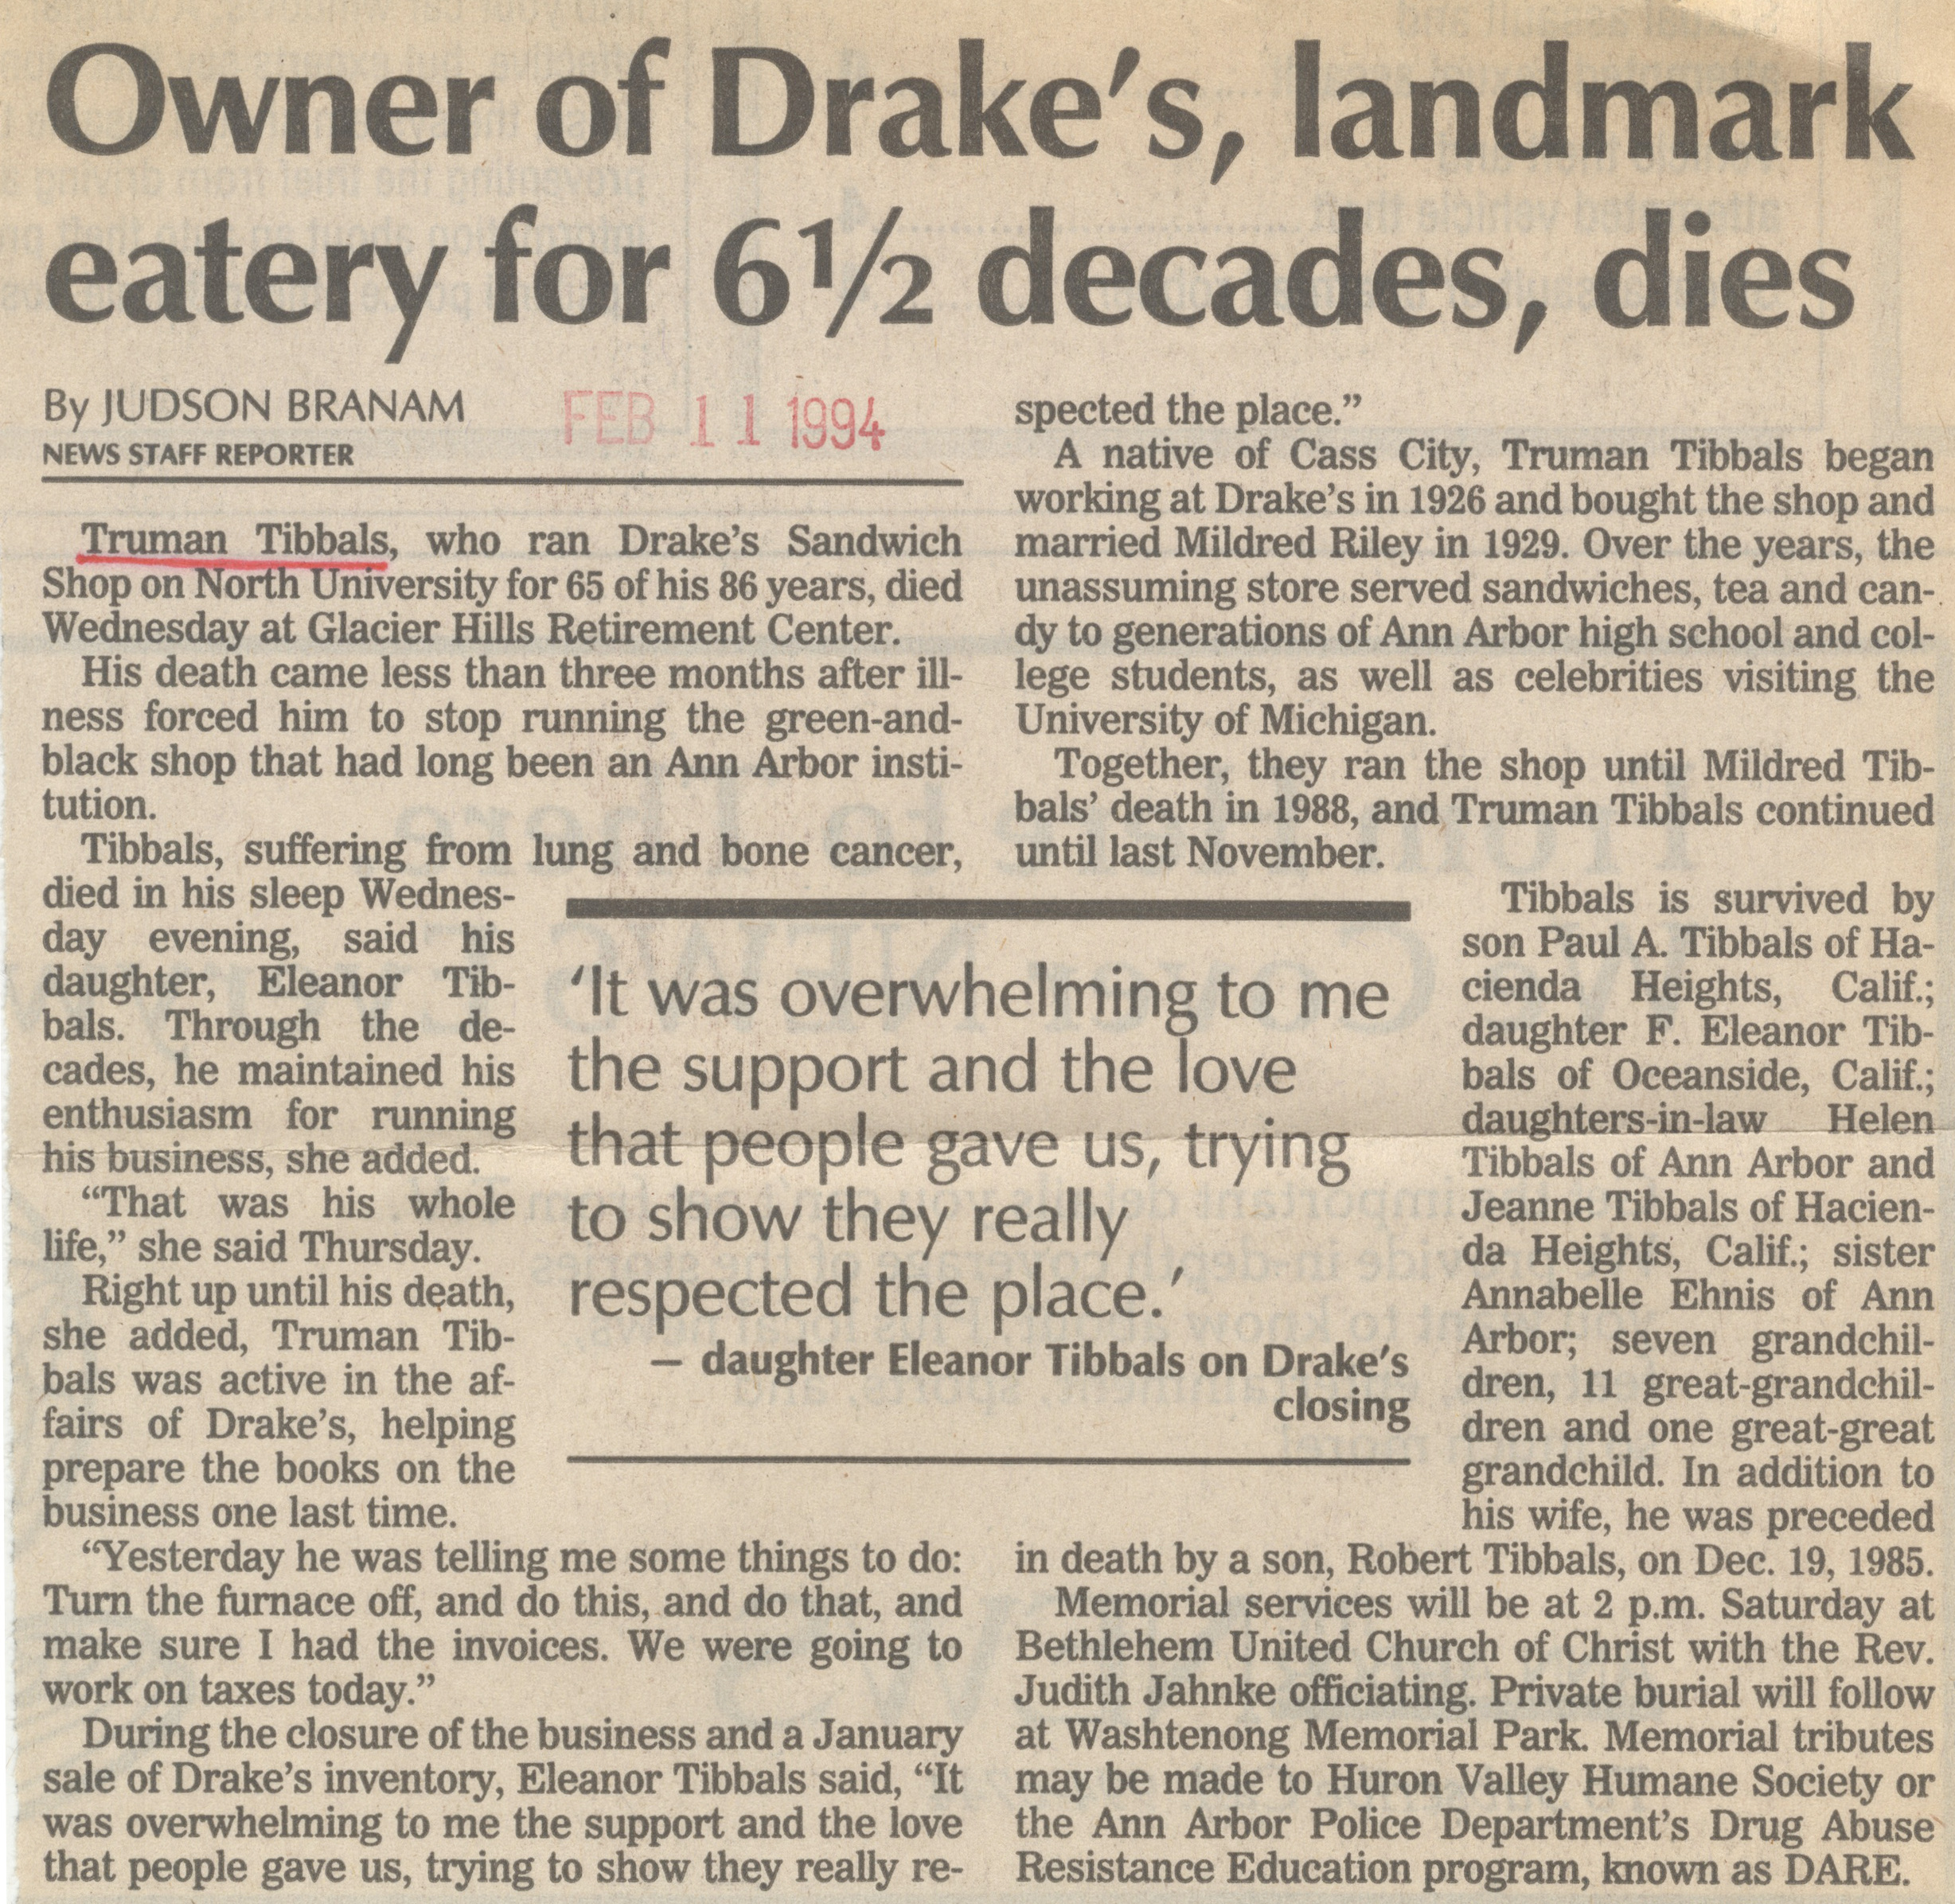 Owner Of Drake's, Landmark Eatery For 6 1/2 Decades, Dies image